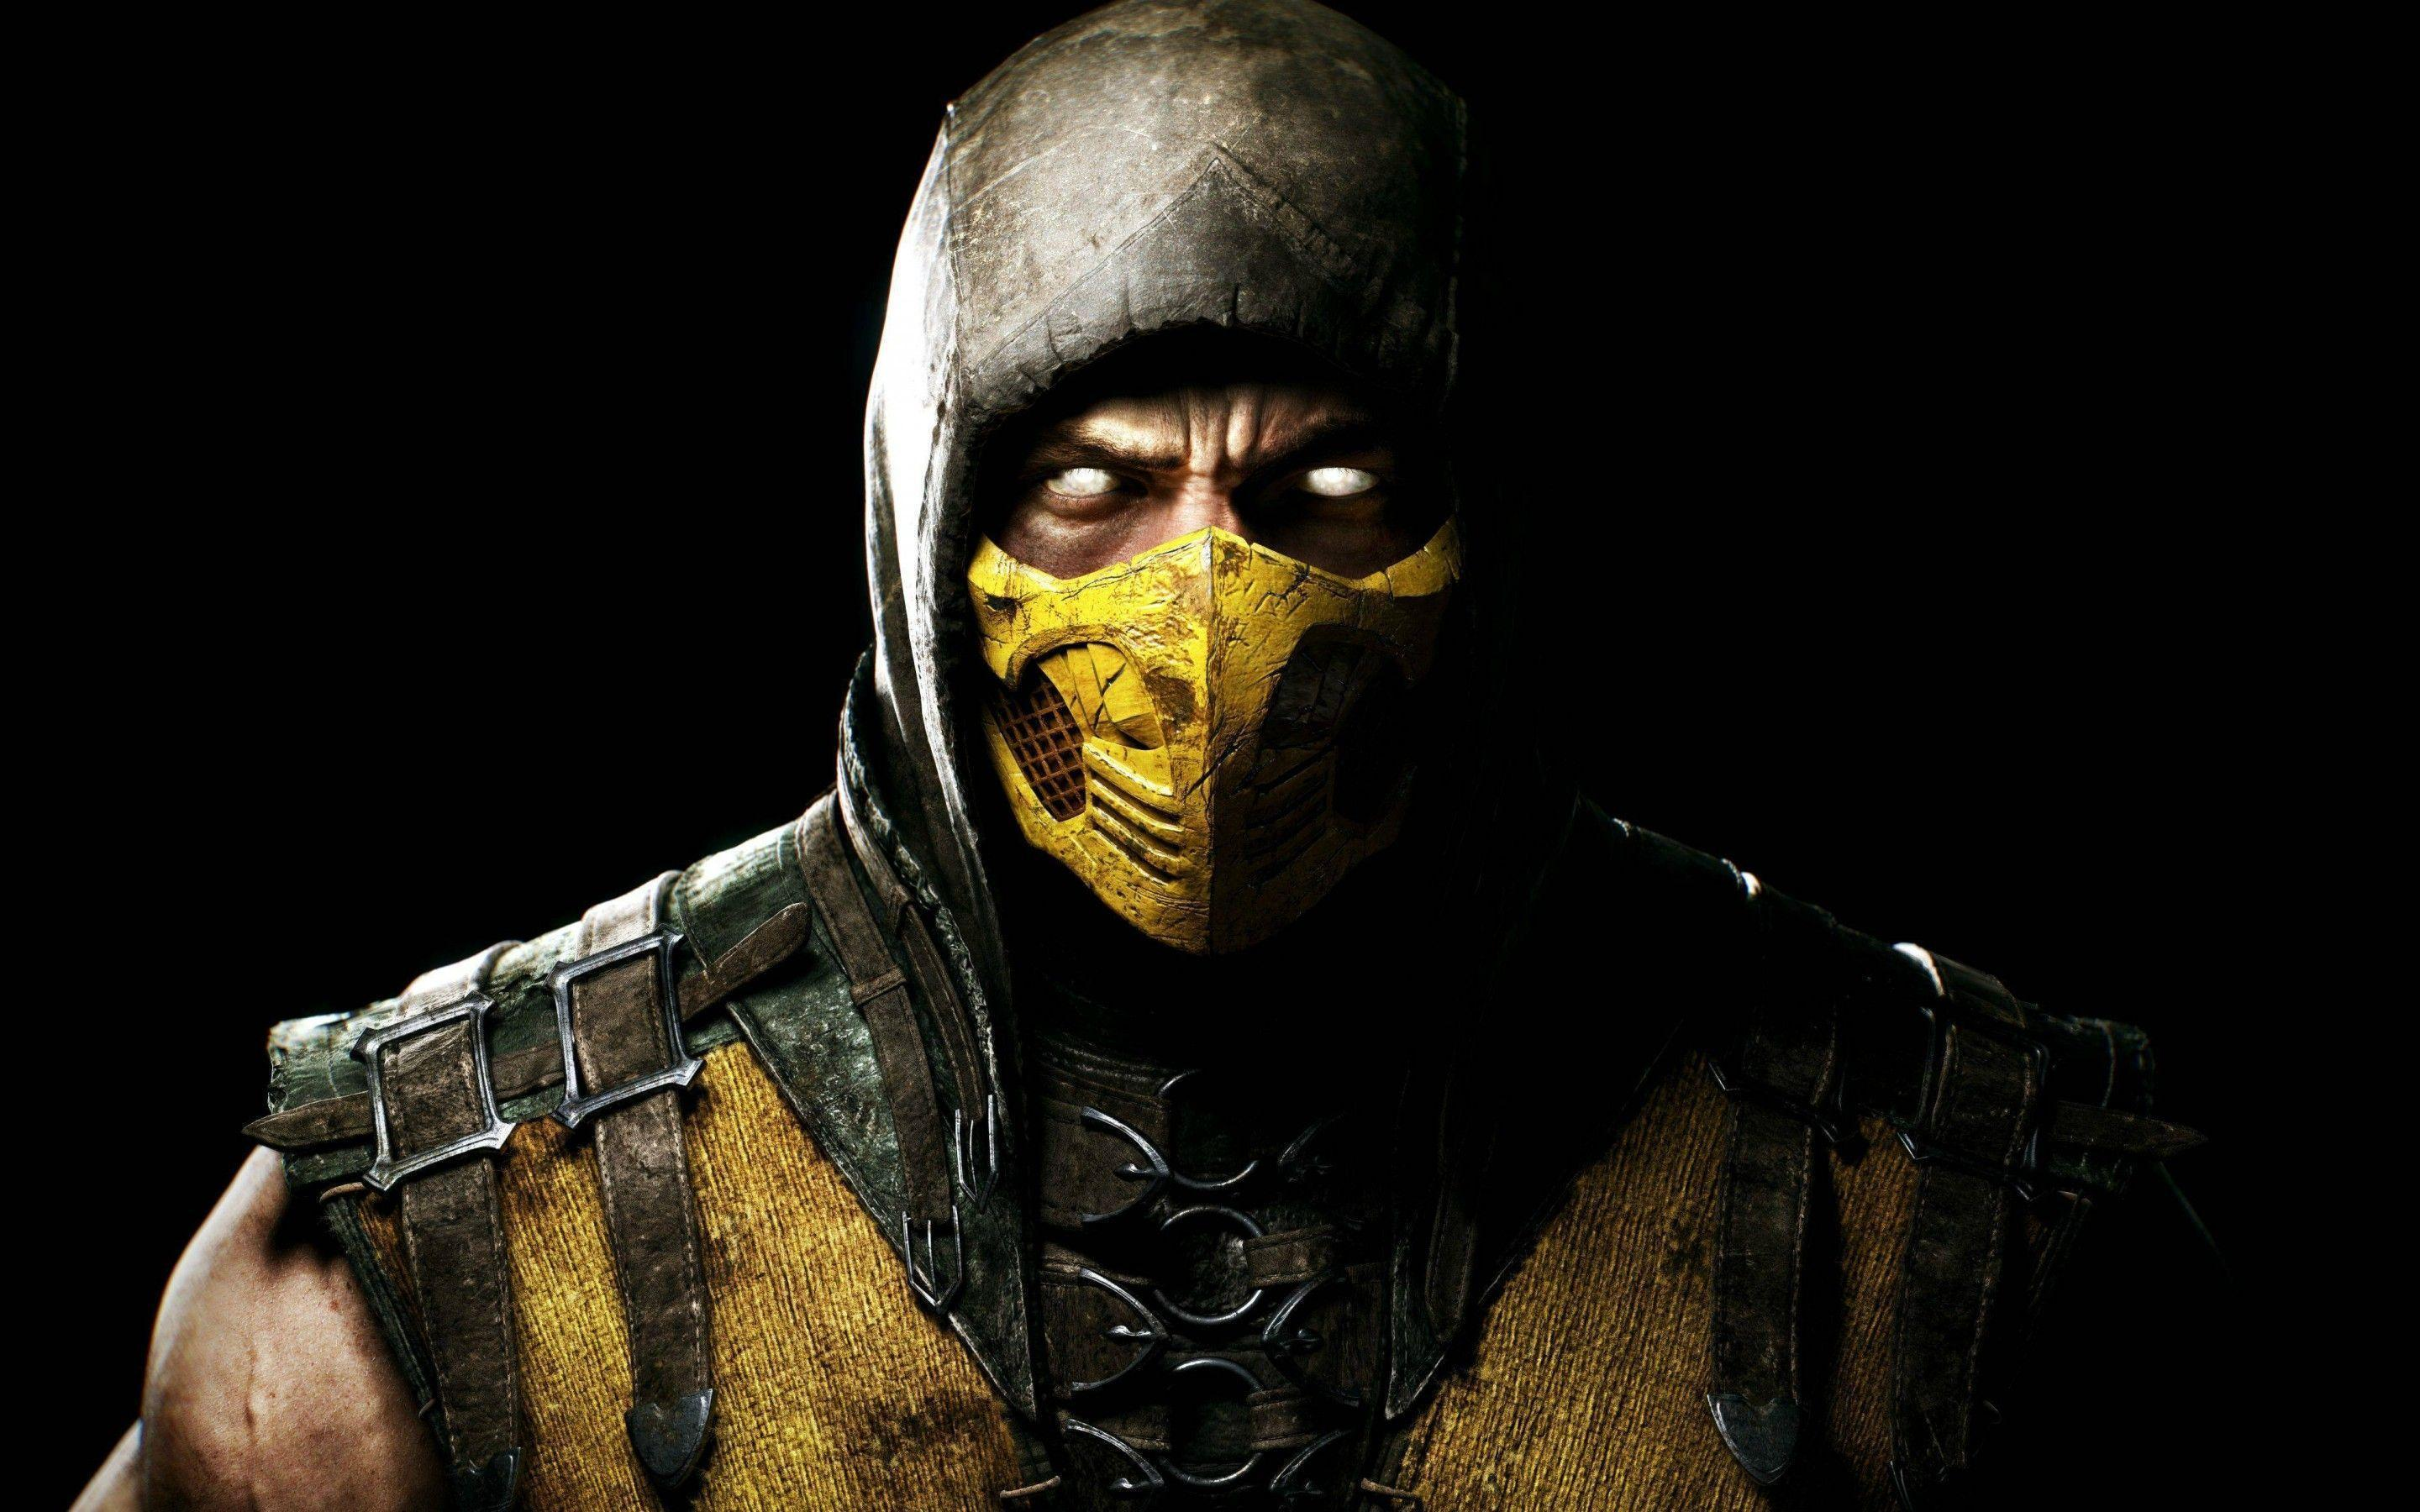 Mortal kombat scorpion wallpapers wallpaper cave - Mortal kombat scorpion wallpaper ...